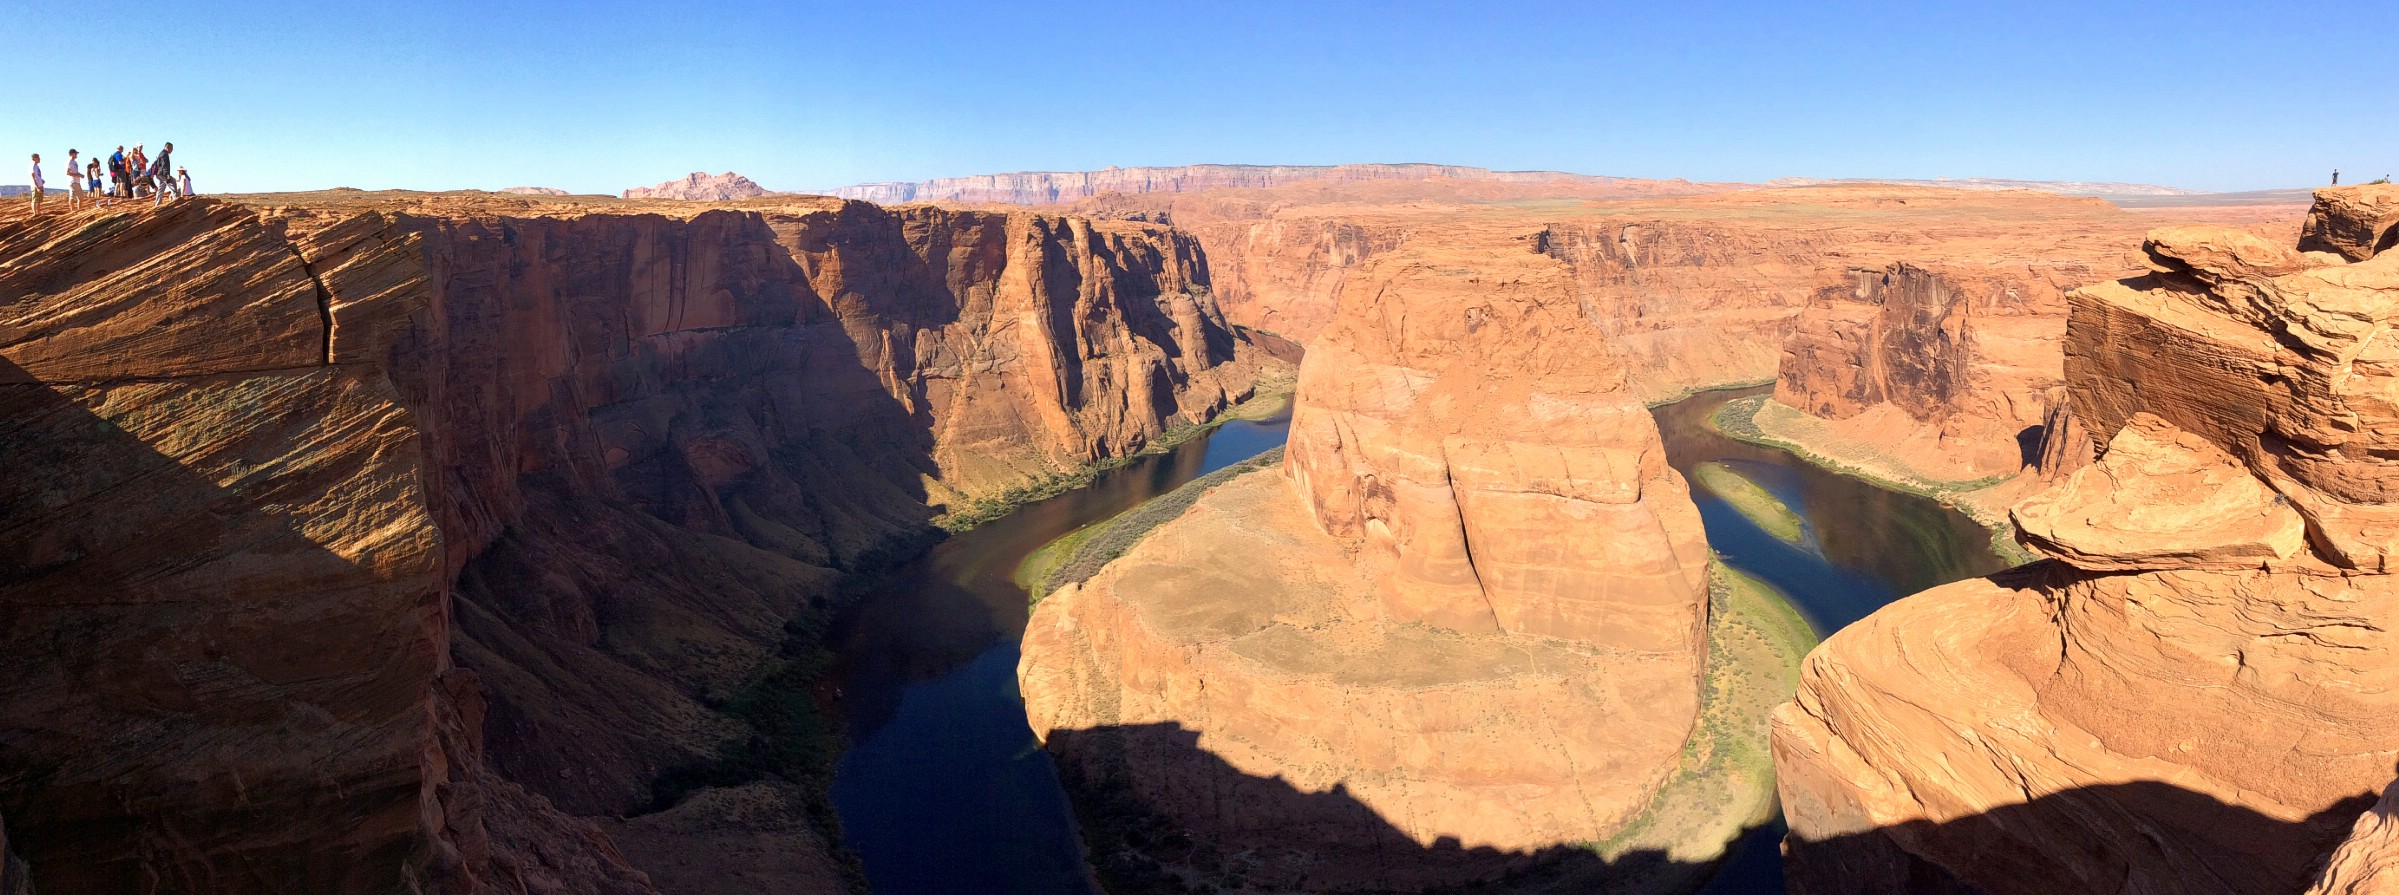 Overlooking Horseshoe Bend of the Colorado River outside Page, Arizona, USA. September 9, 2016.